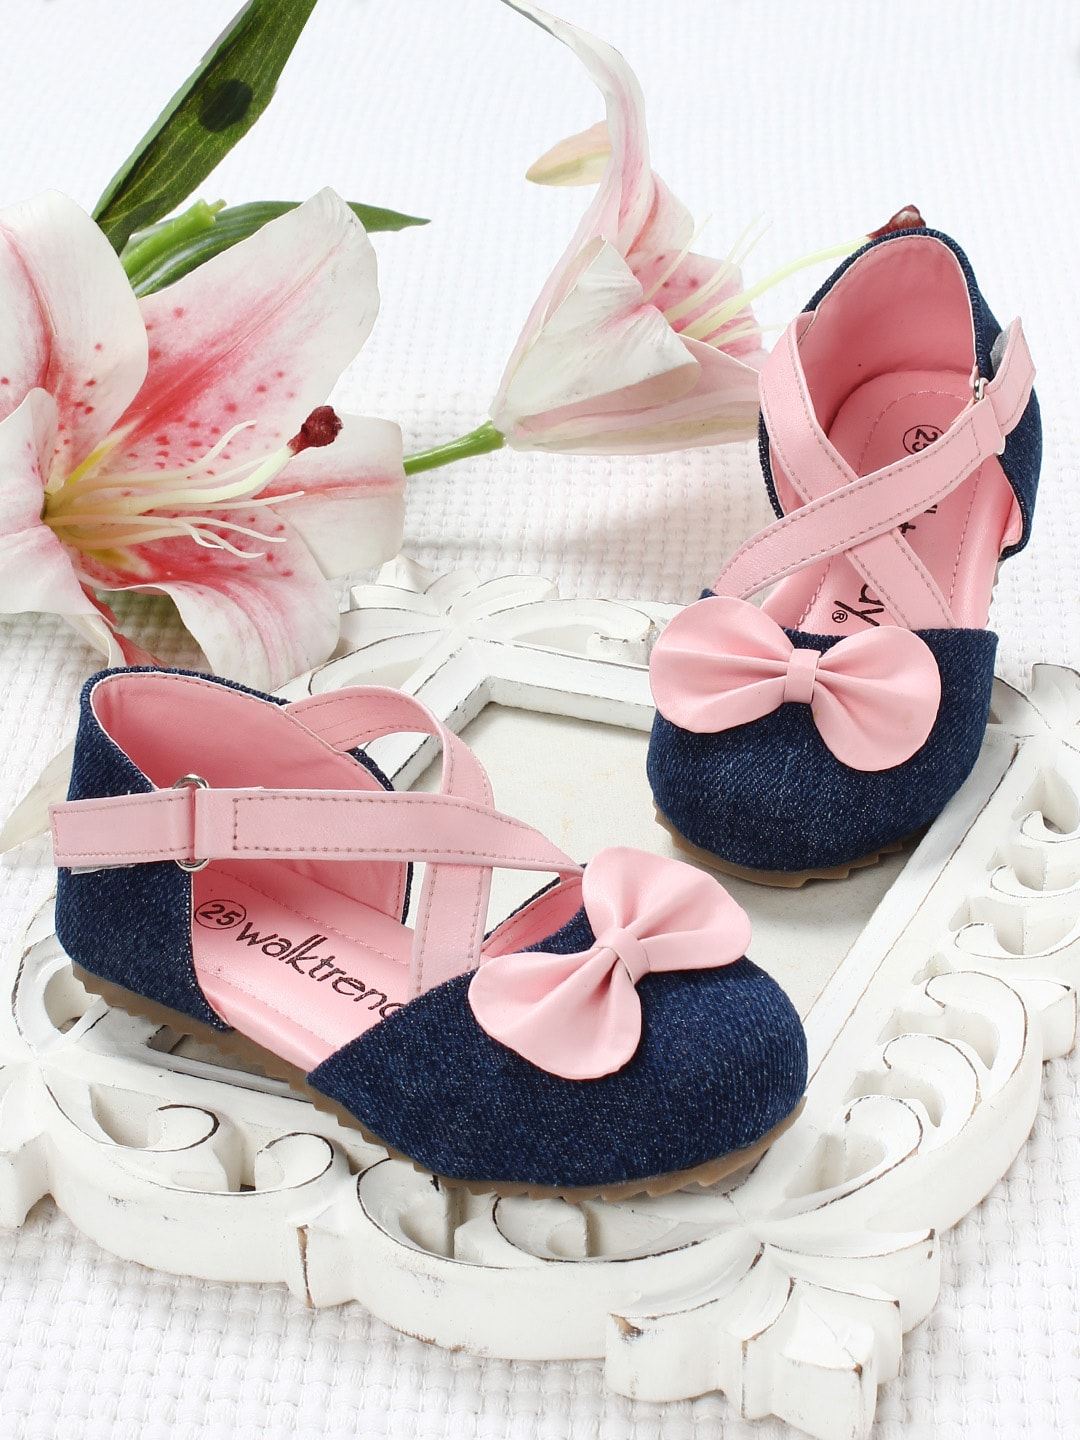 21c71bde3db Pink Sandal Casual Shoes Flats - Buy Pink Sandal Casual Shoes Flats online  in India